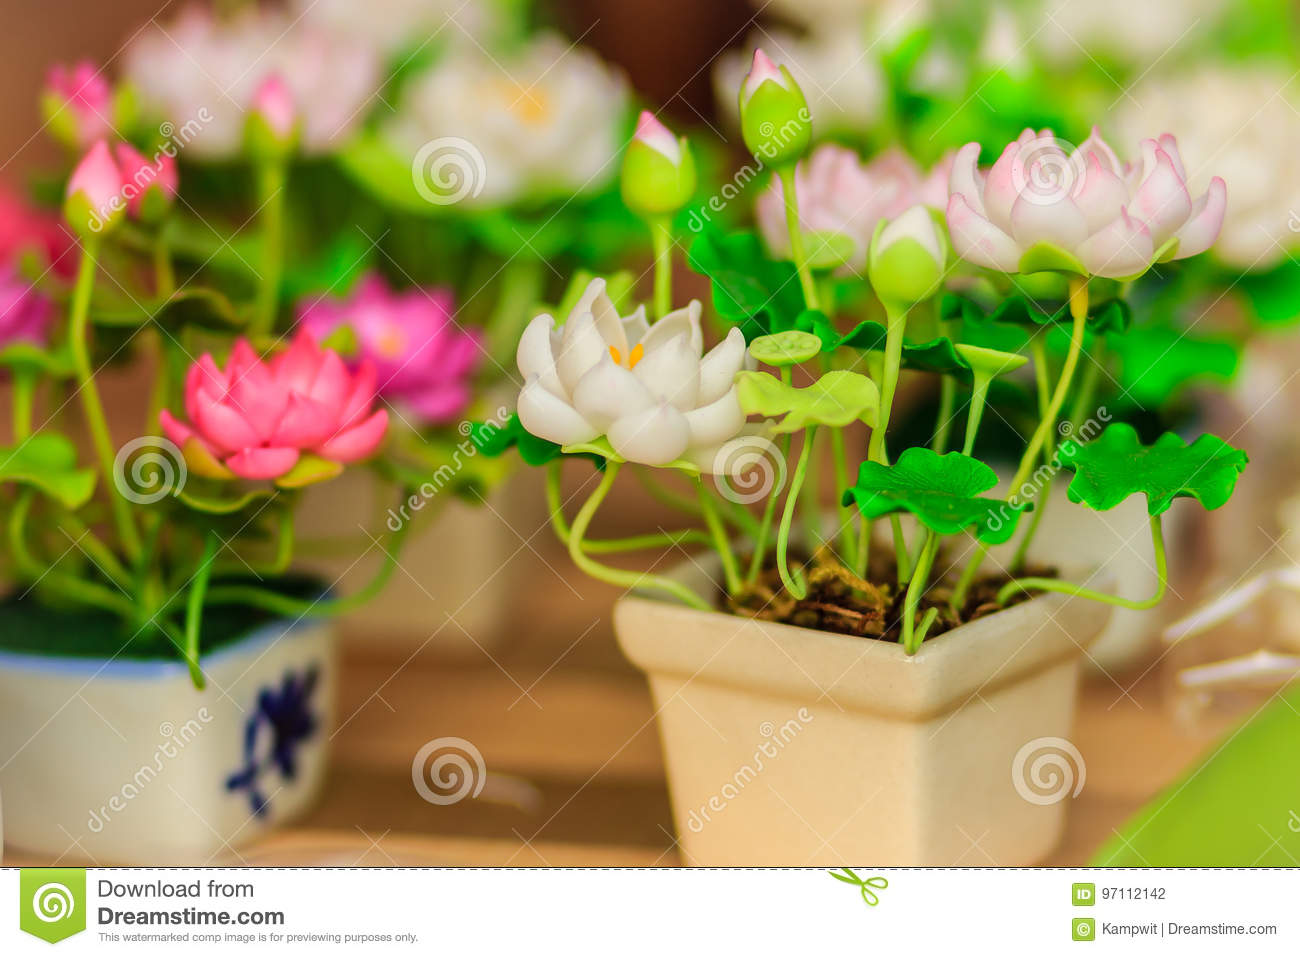 Cute Artificial Pink Lotus Flowers Or Water Lily Artificial Lot